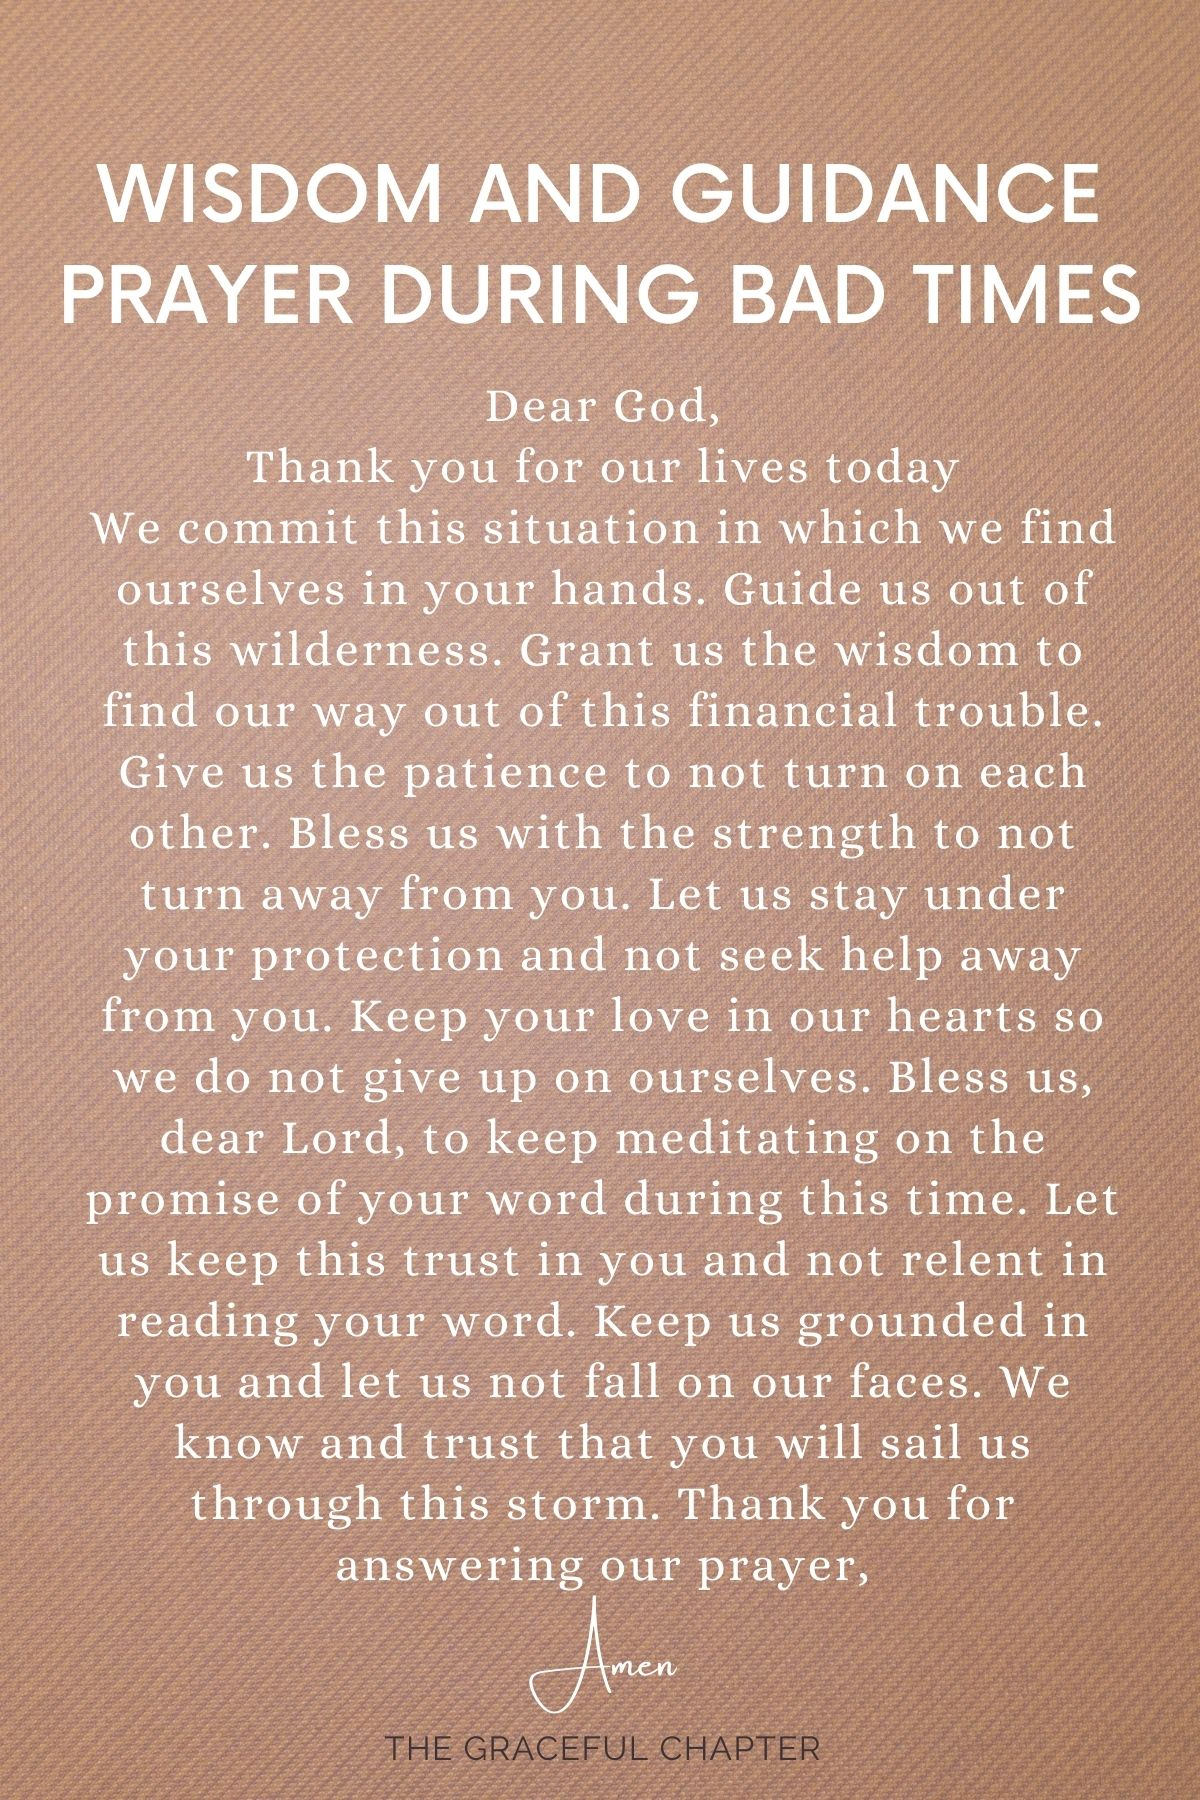 Wisdom and guidance during bad times